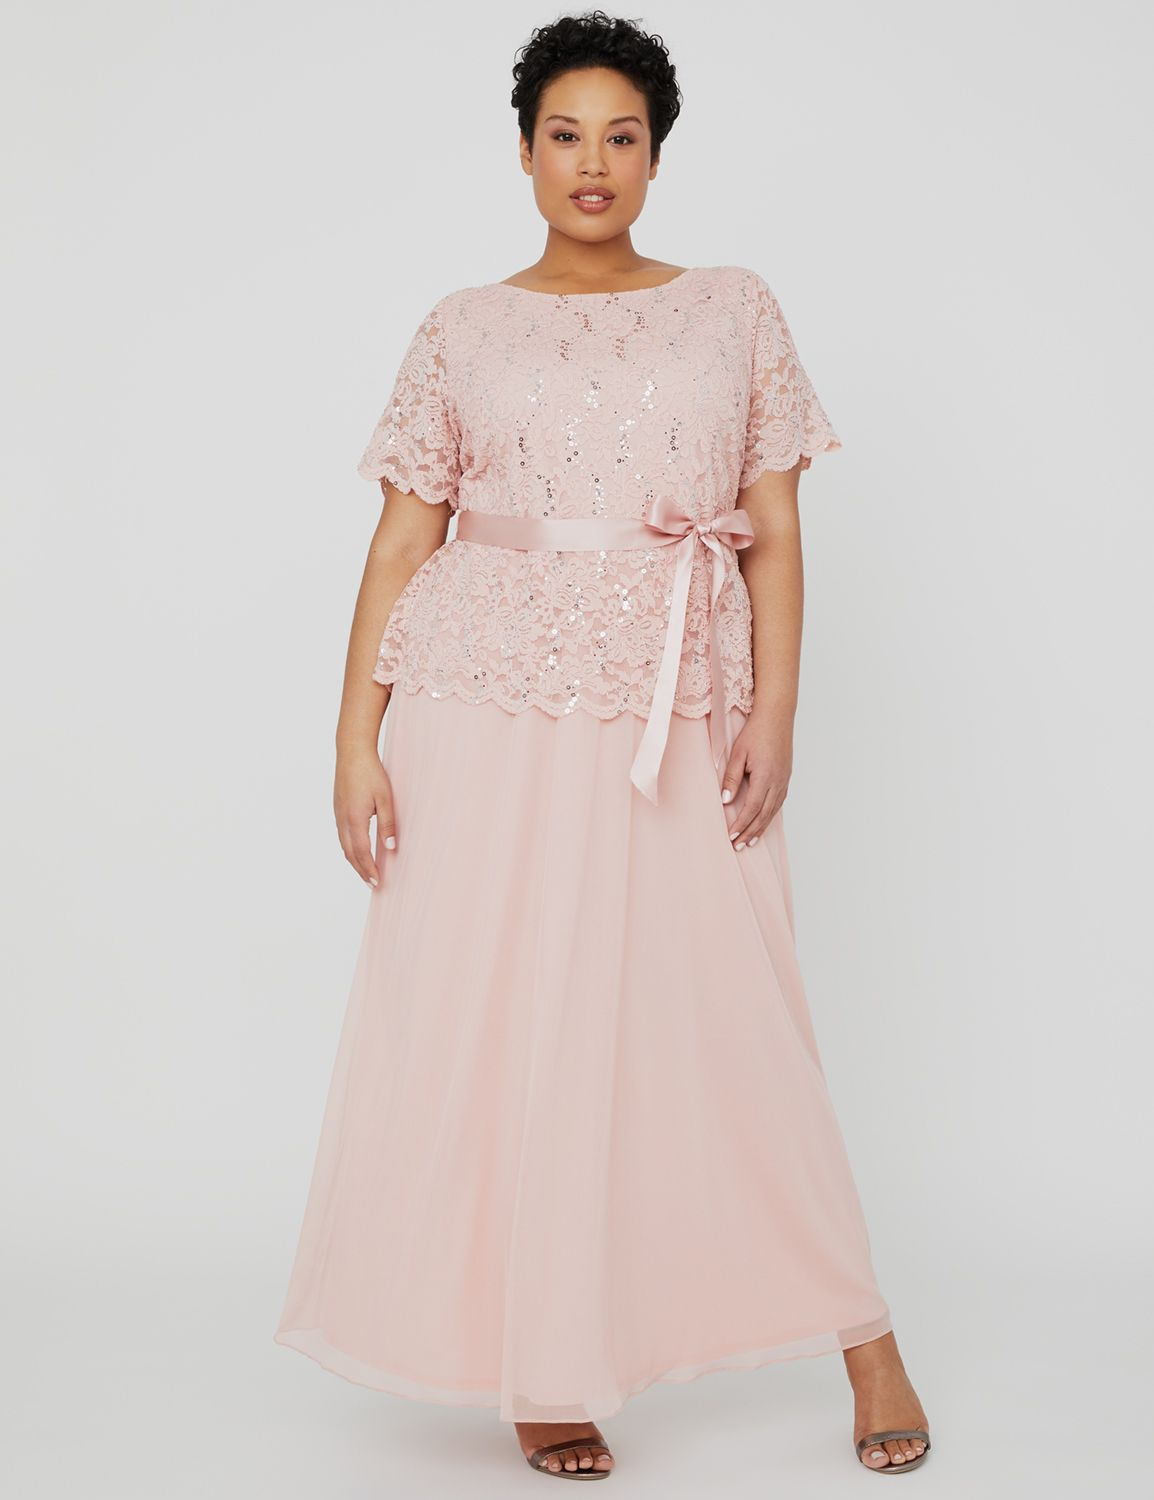 Blush Sunset Dress 1090995 Long Dress with Lace Bodice MP-300101599